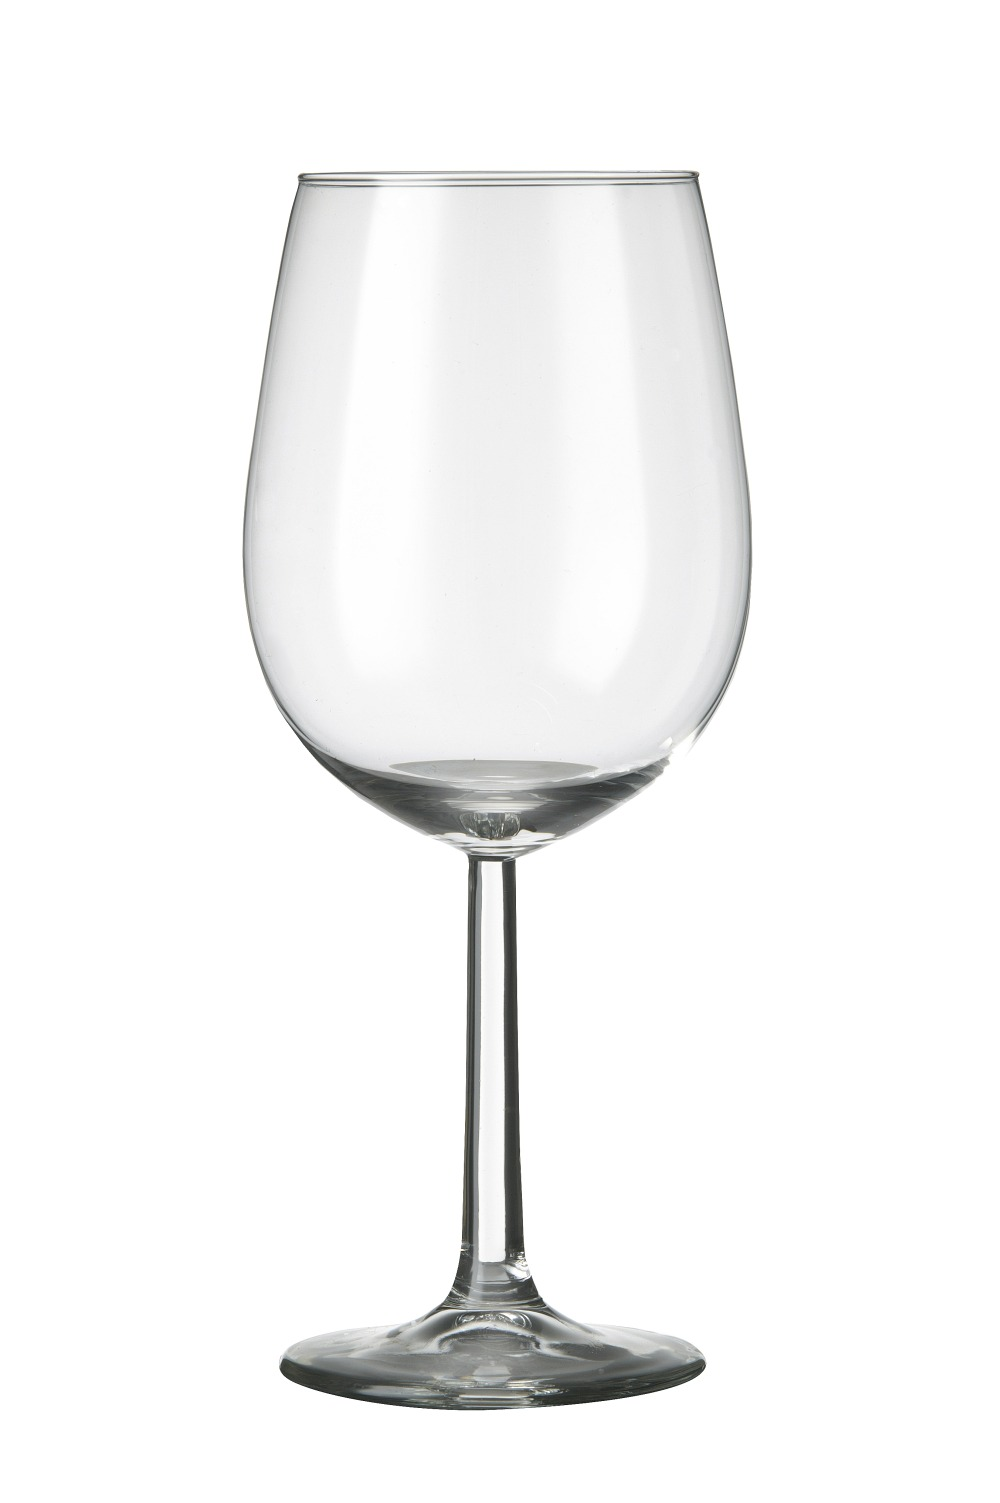 royal_leerdam_wijnglas_bouquet_45cl.jpg